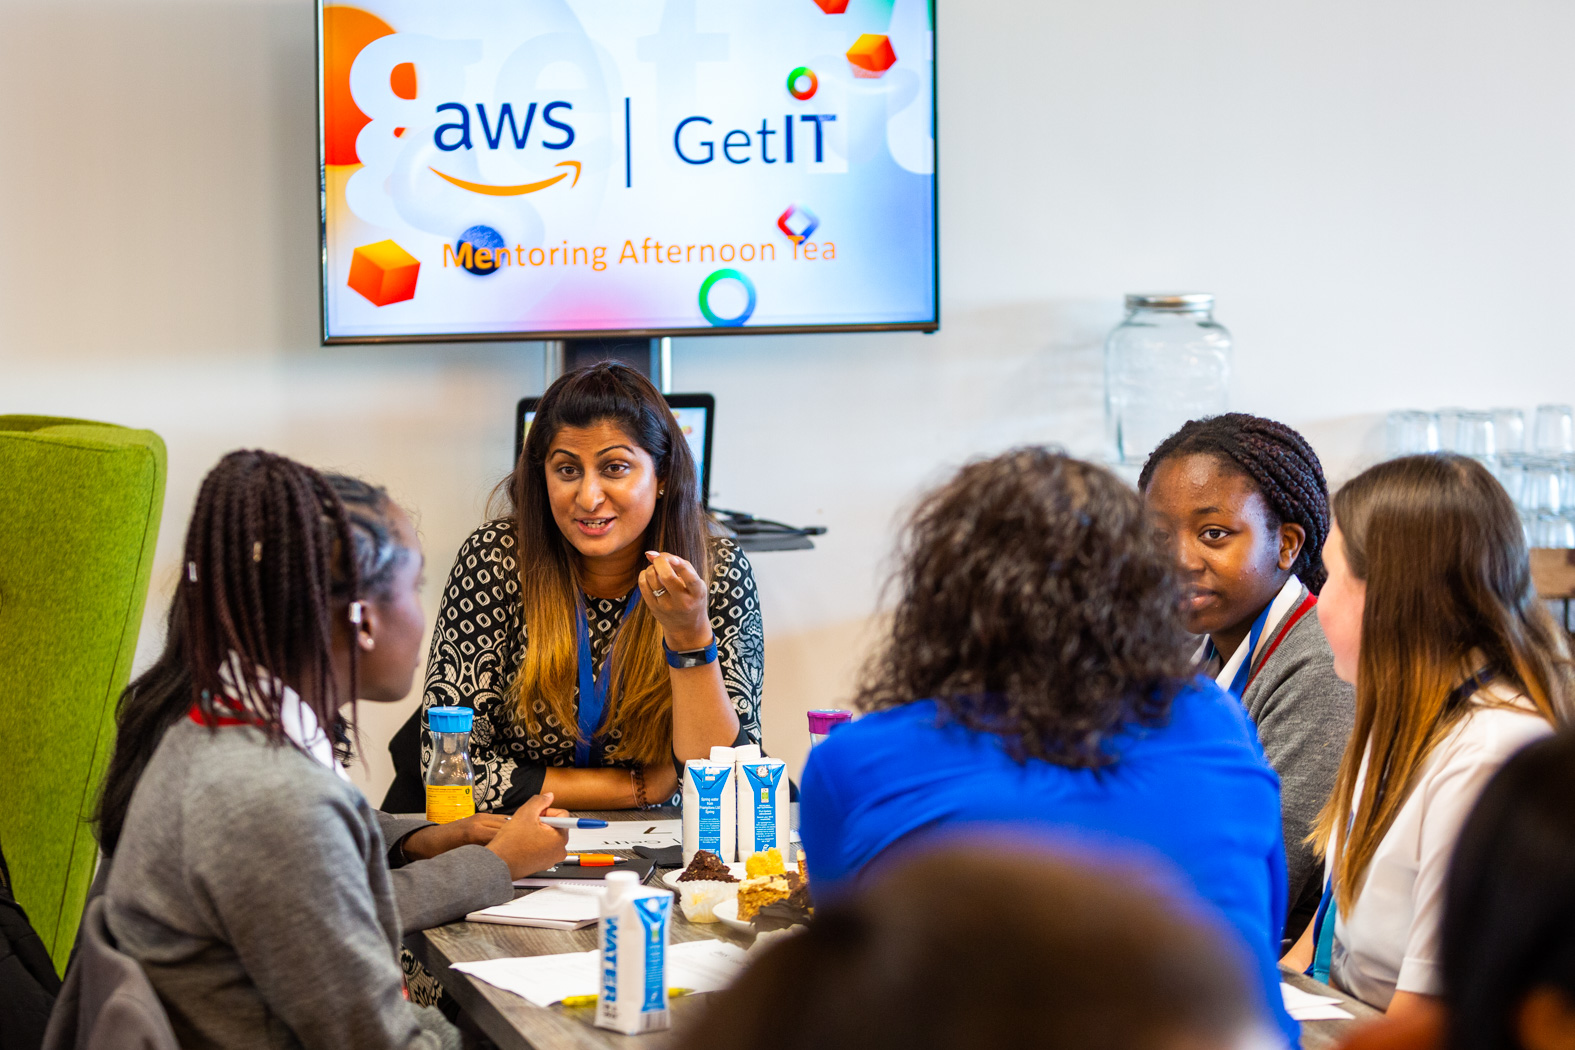 AWS GetIT, Mentoring afternoon tea, 2Oct2019, ©BronacMcNeill